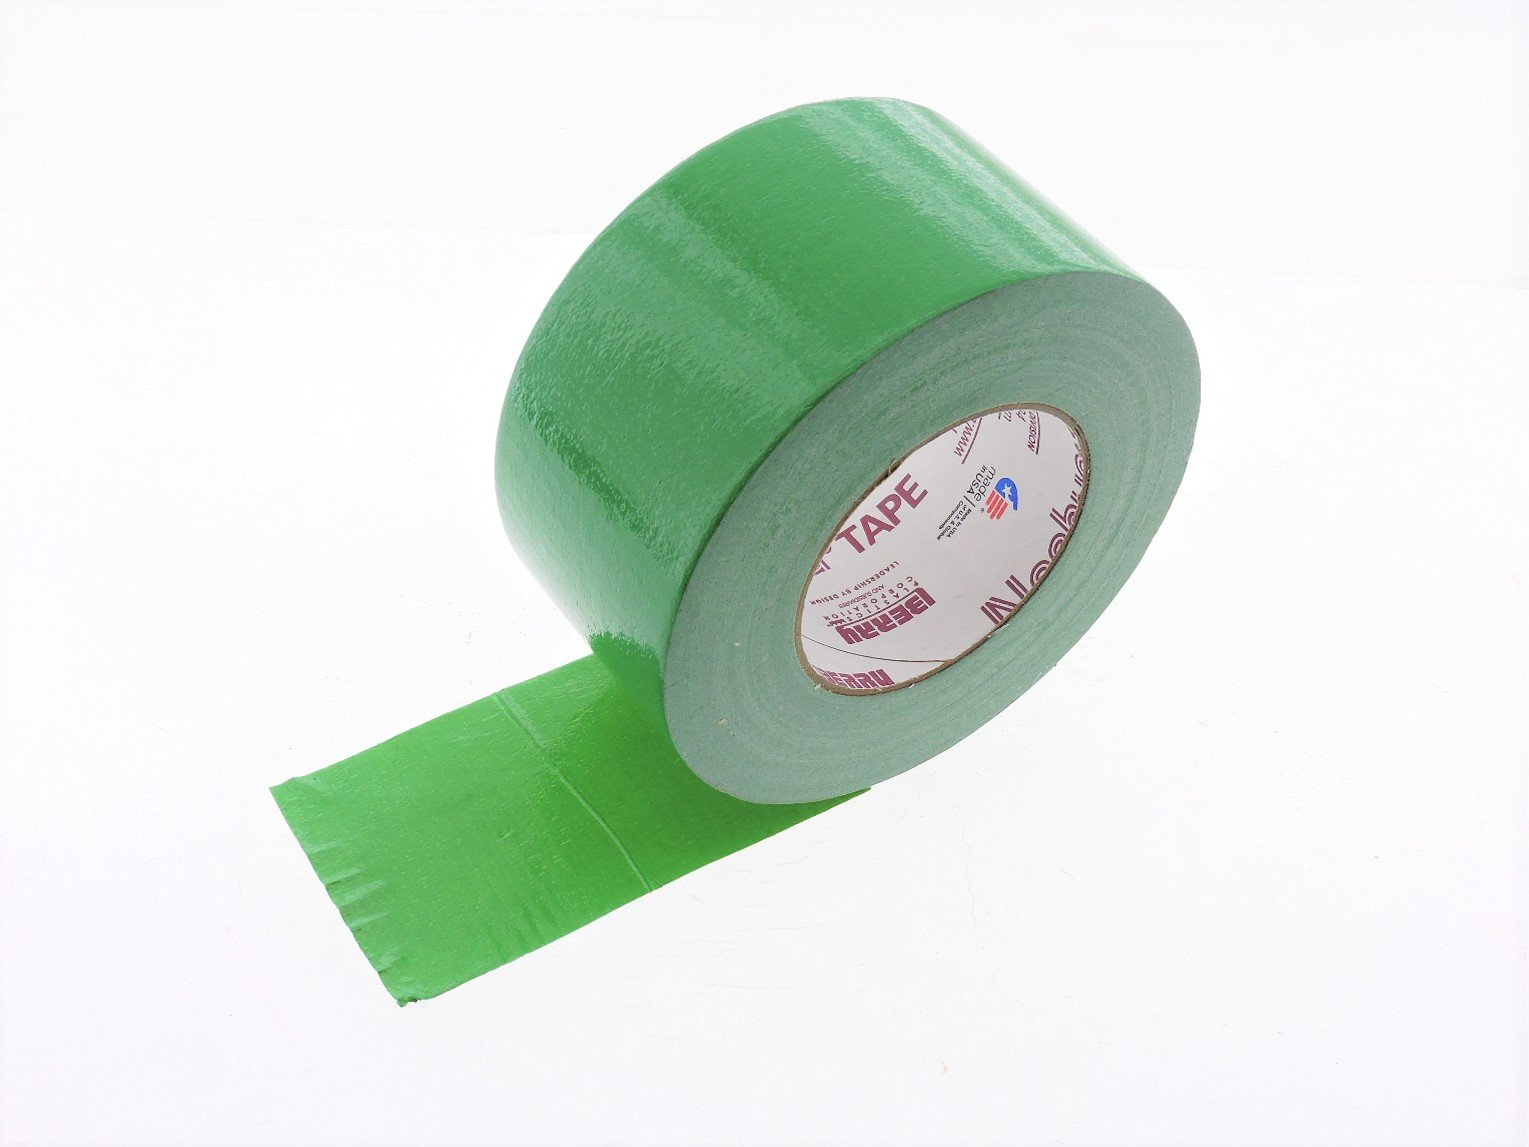 3'' in Green Duct Tape Nashua 2280 Heavy 9 mil Cloth Reinforced PE Back Duct Tape Water UV Resistant Hand Tearable 60yd USA Made 70 oz inch adhesion 20% elongation 24 lb in tensile strength